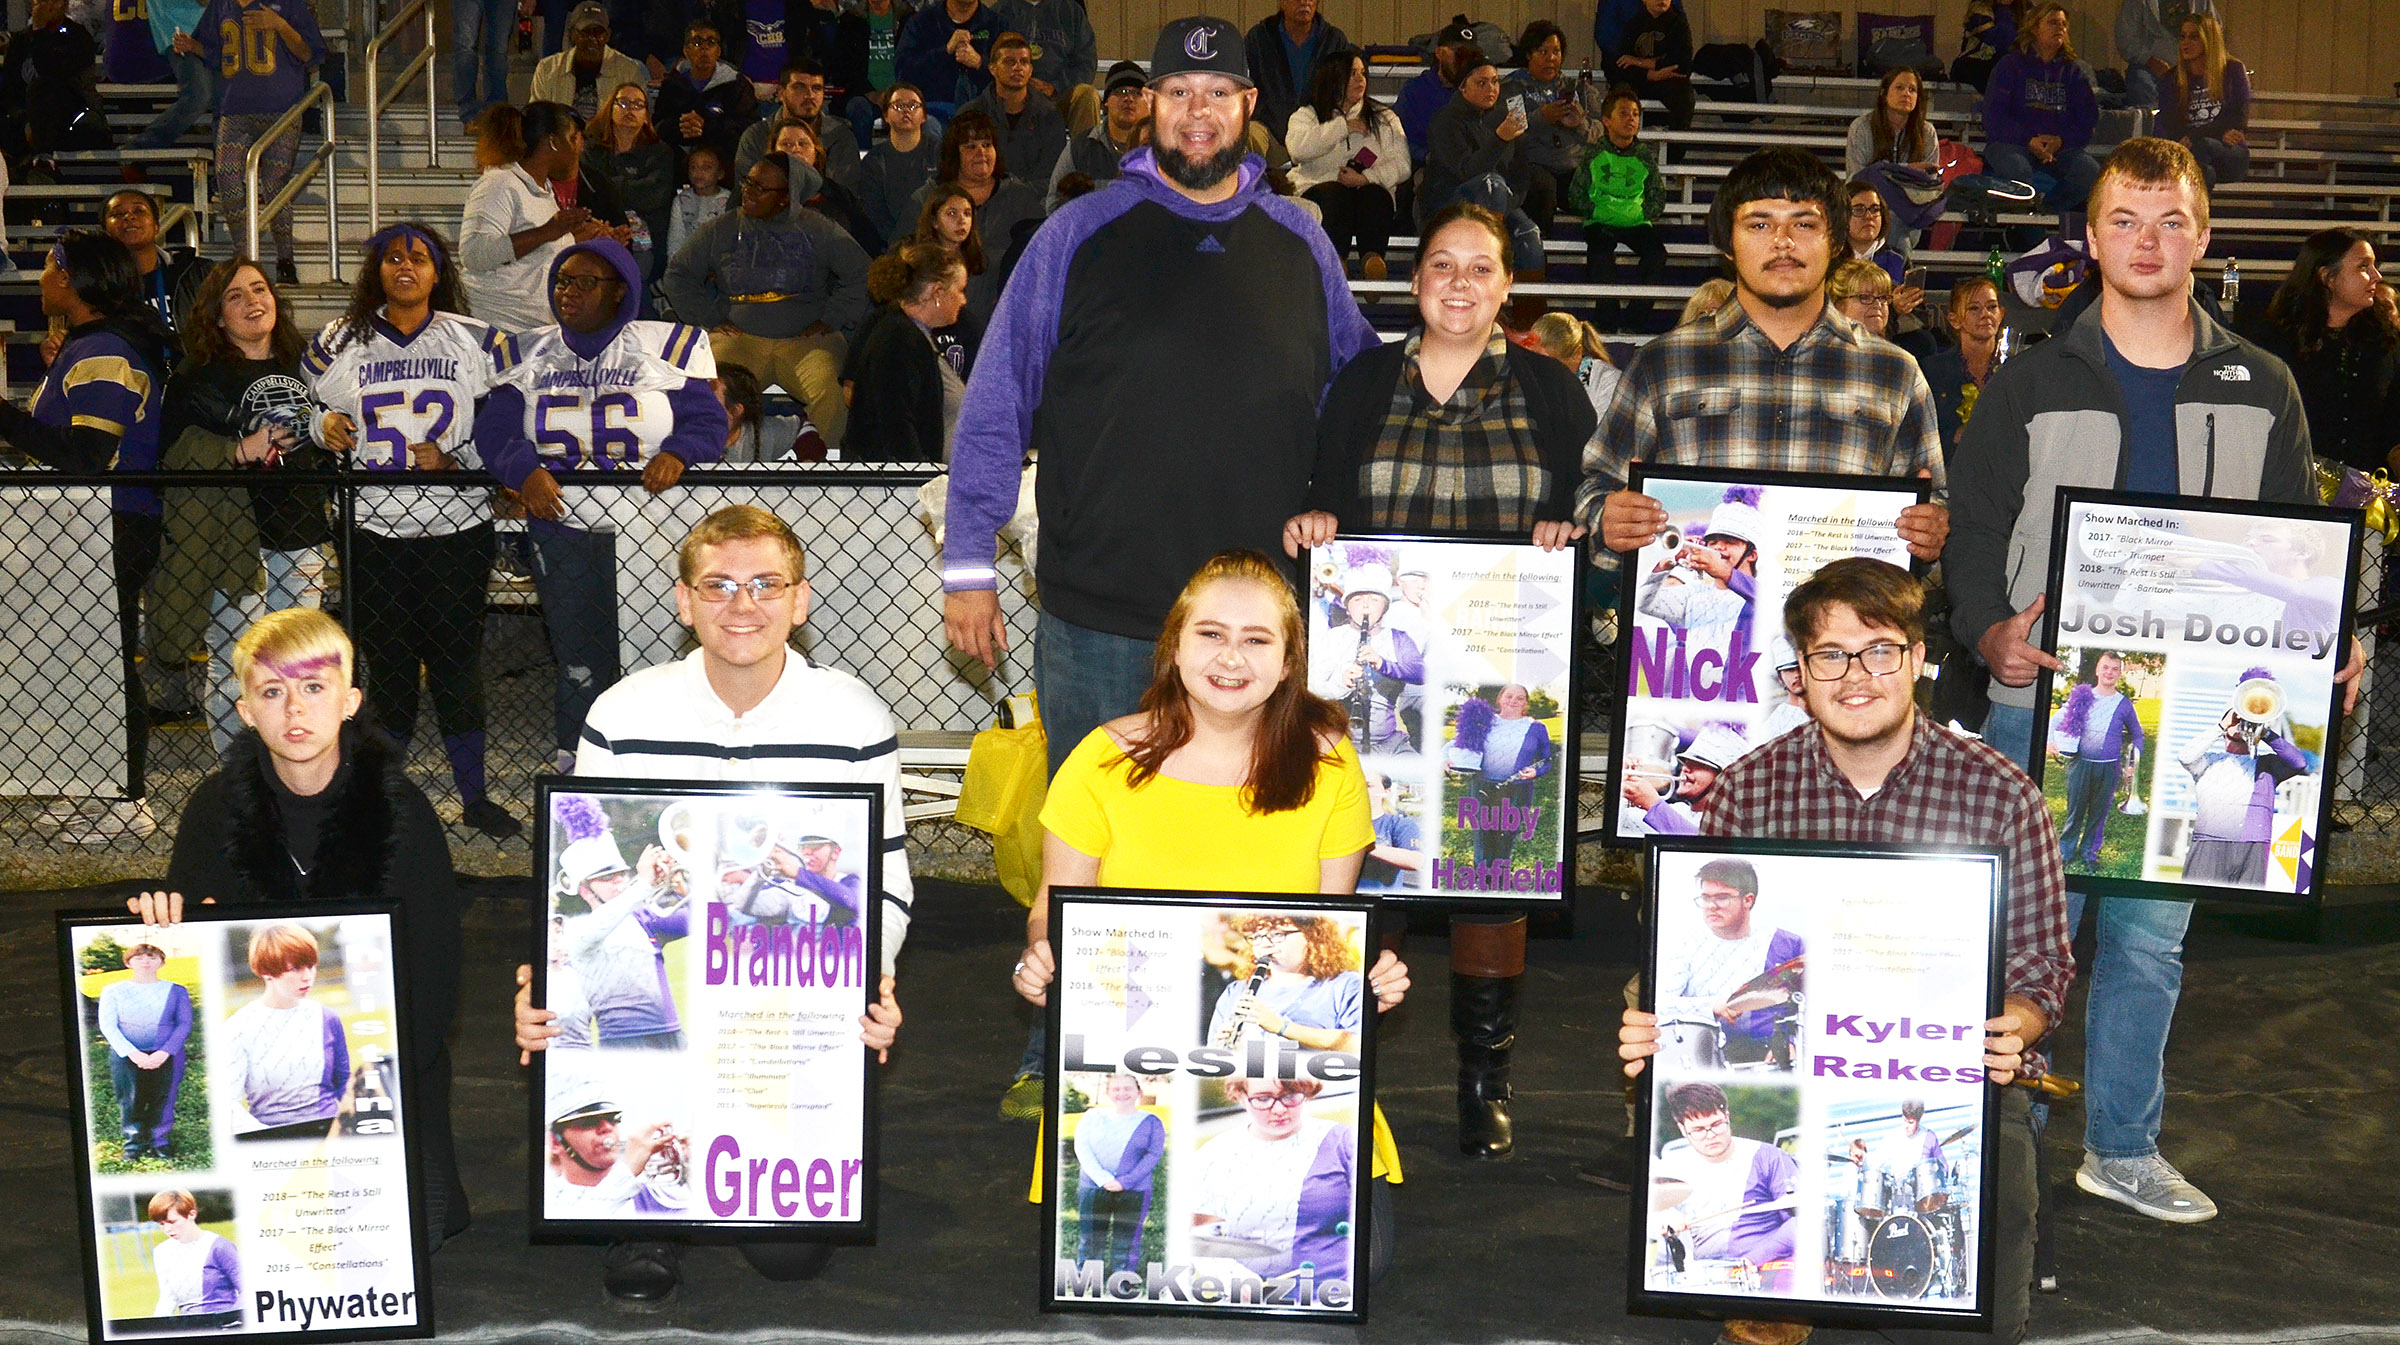 CHS senior marching band members are pictured with Director Zach Shelton. From left, front, are Christina Phywater, Brandon Greer, Leslie McKenzie and Kyler Rakes. Back, Shelton, Ruby Hatfield, Nick Cowan and Josh Dooley.